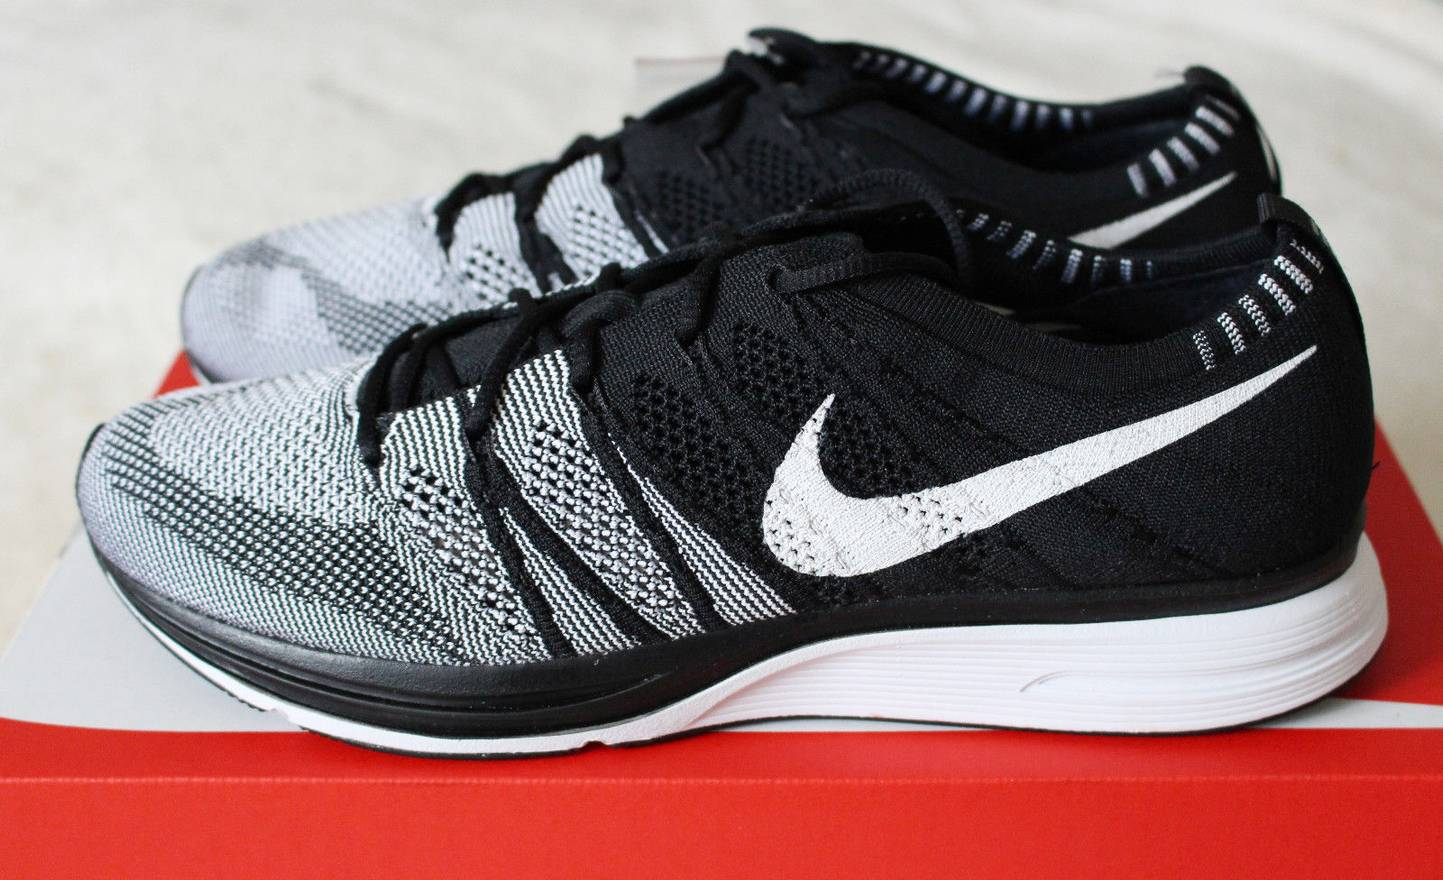 5d18a1c9583e ... clearance nike nike flyknit trainer black white oreo ah8396 005 size 10  yeezy nmd boost size